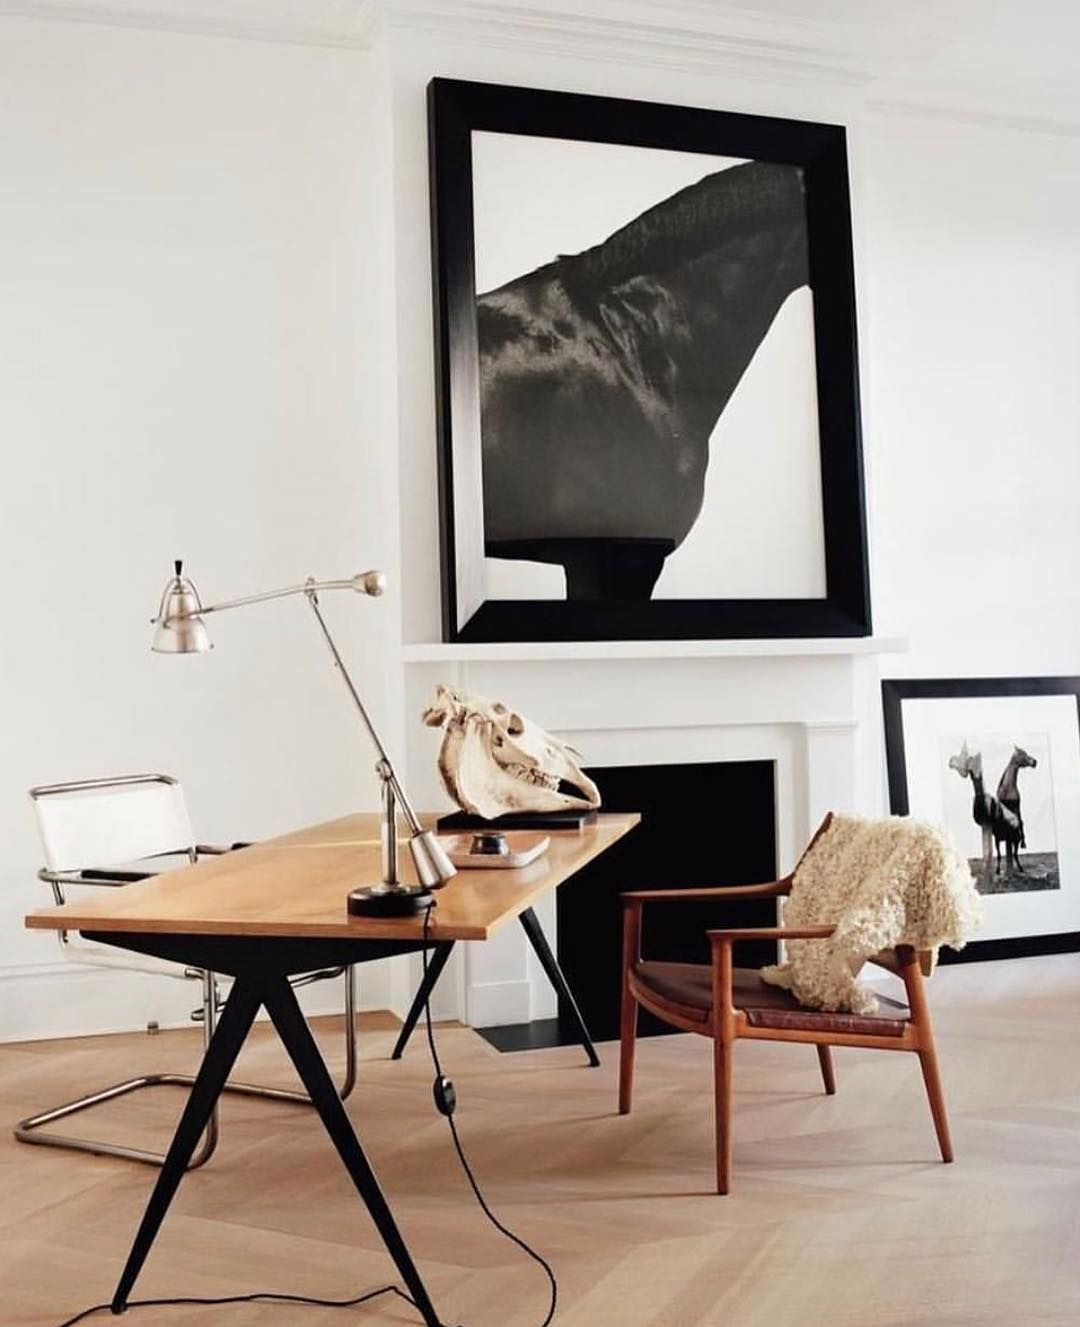 Minimal Interiordesign Office: David Brian Sanders On Instagram: #jeanprouv #jeanprouve